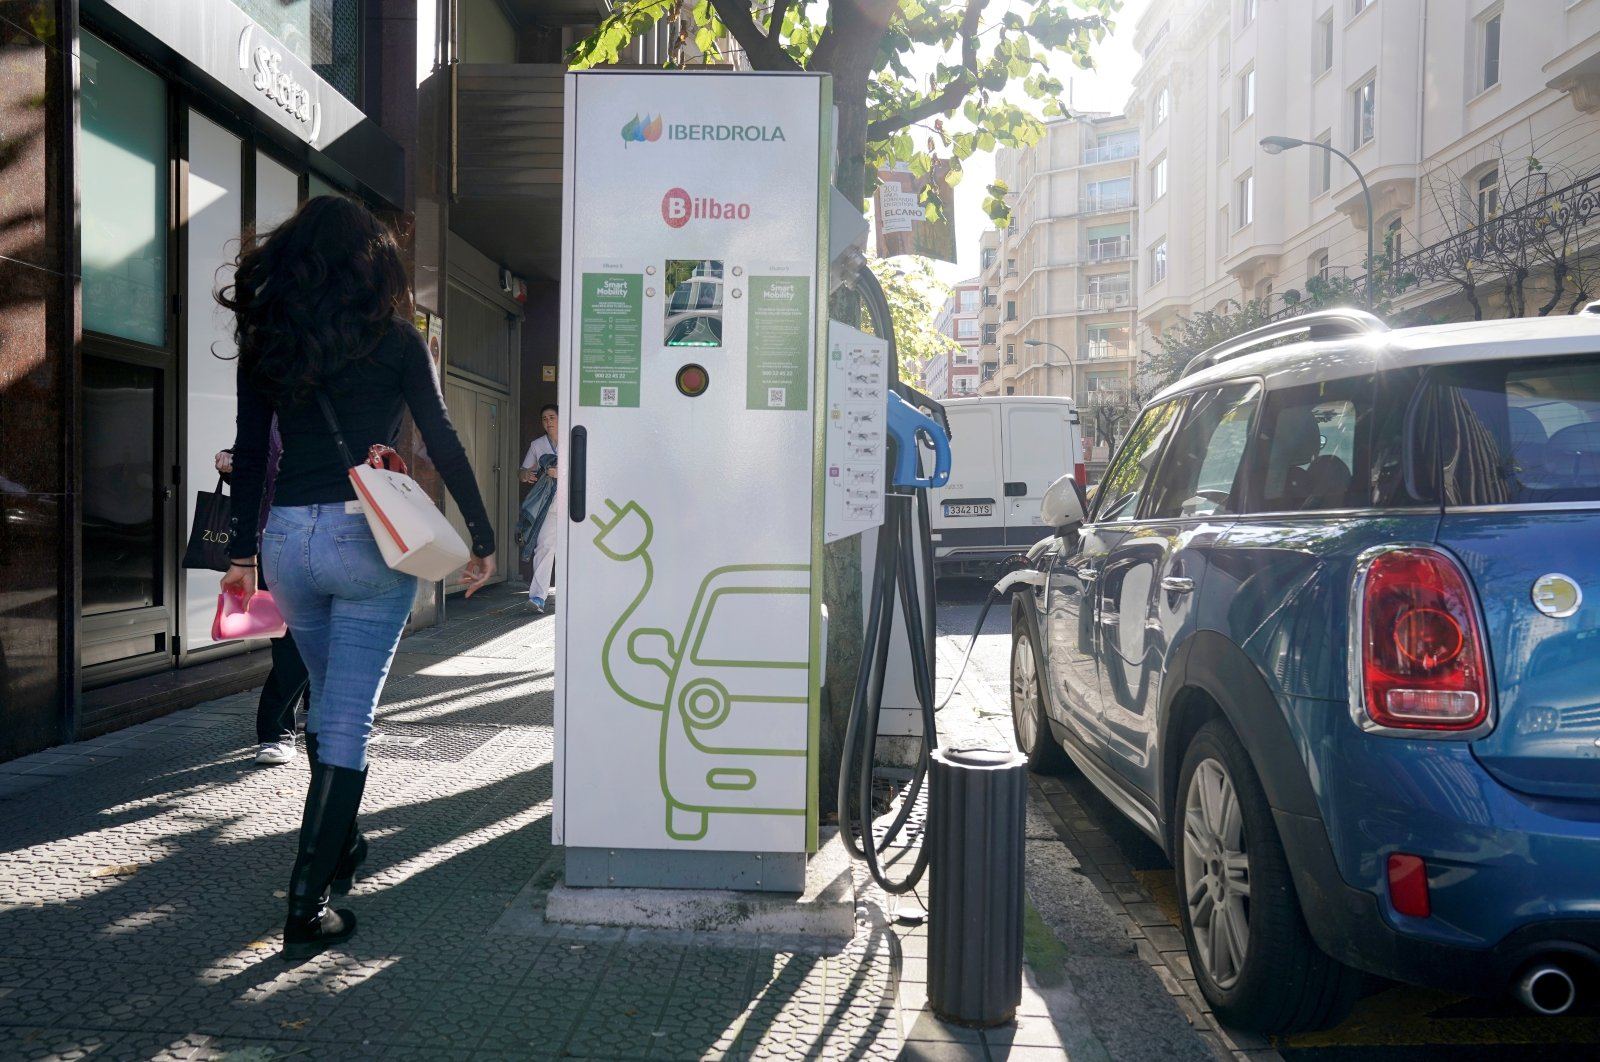 An electric car is charged at an Iberdrola electric car charging station in central Bilbao, Spain, Nov. 15, 2018. (Reuters Photo)